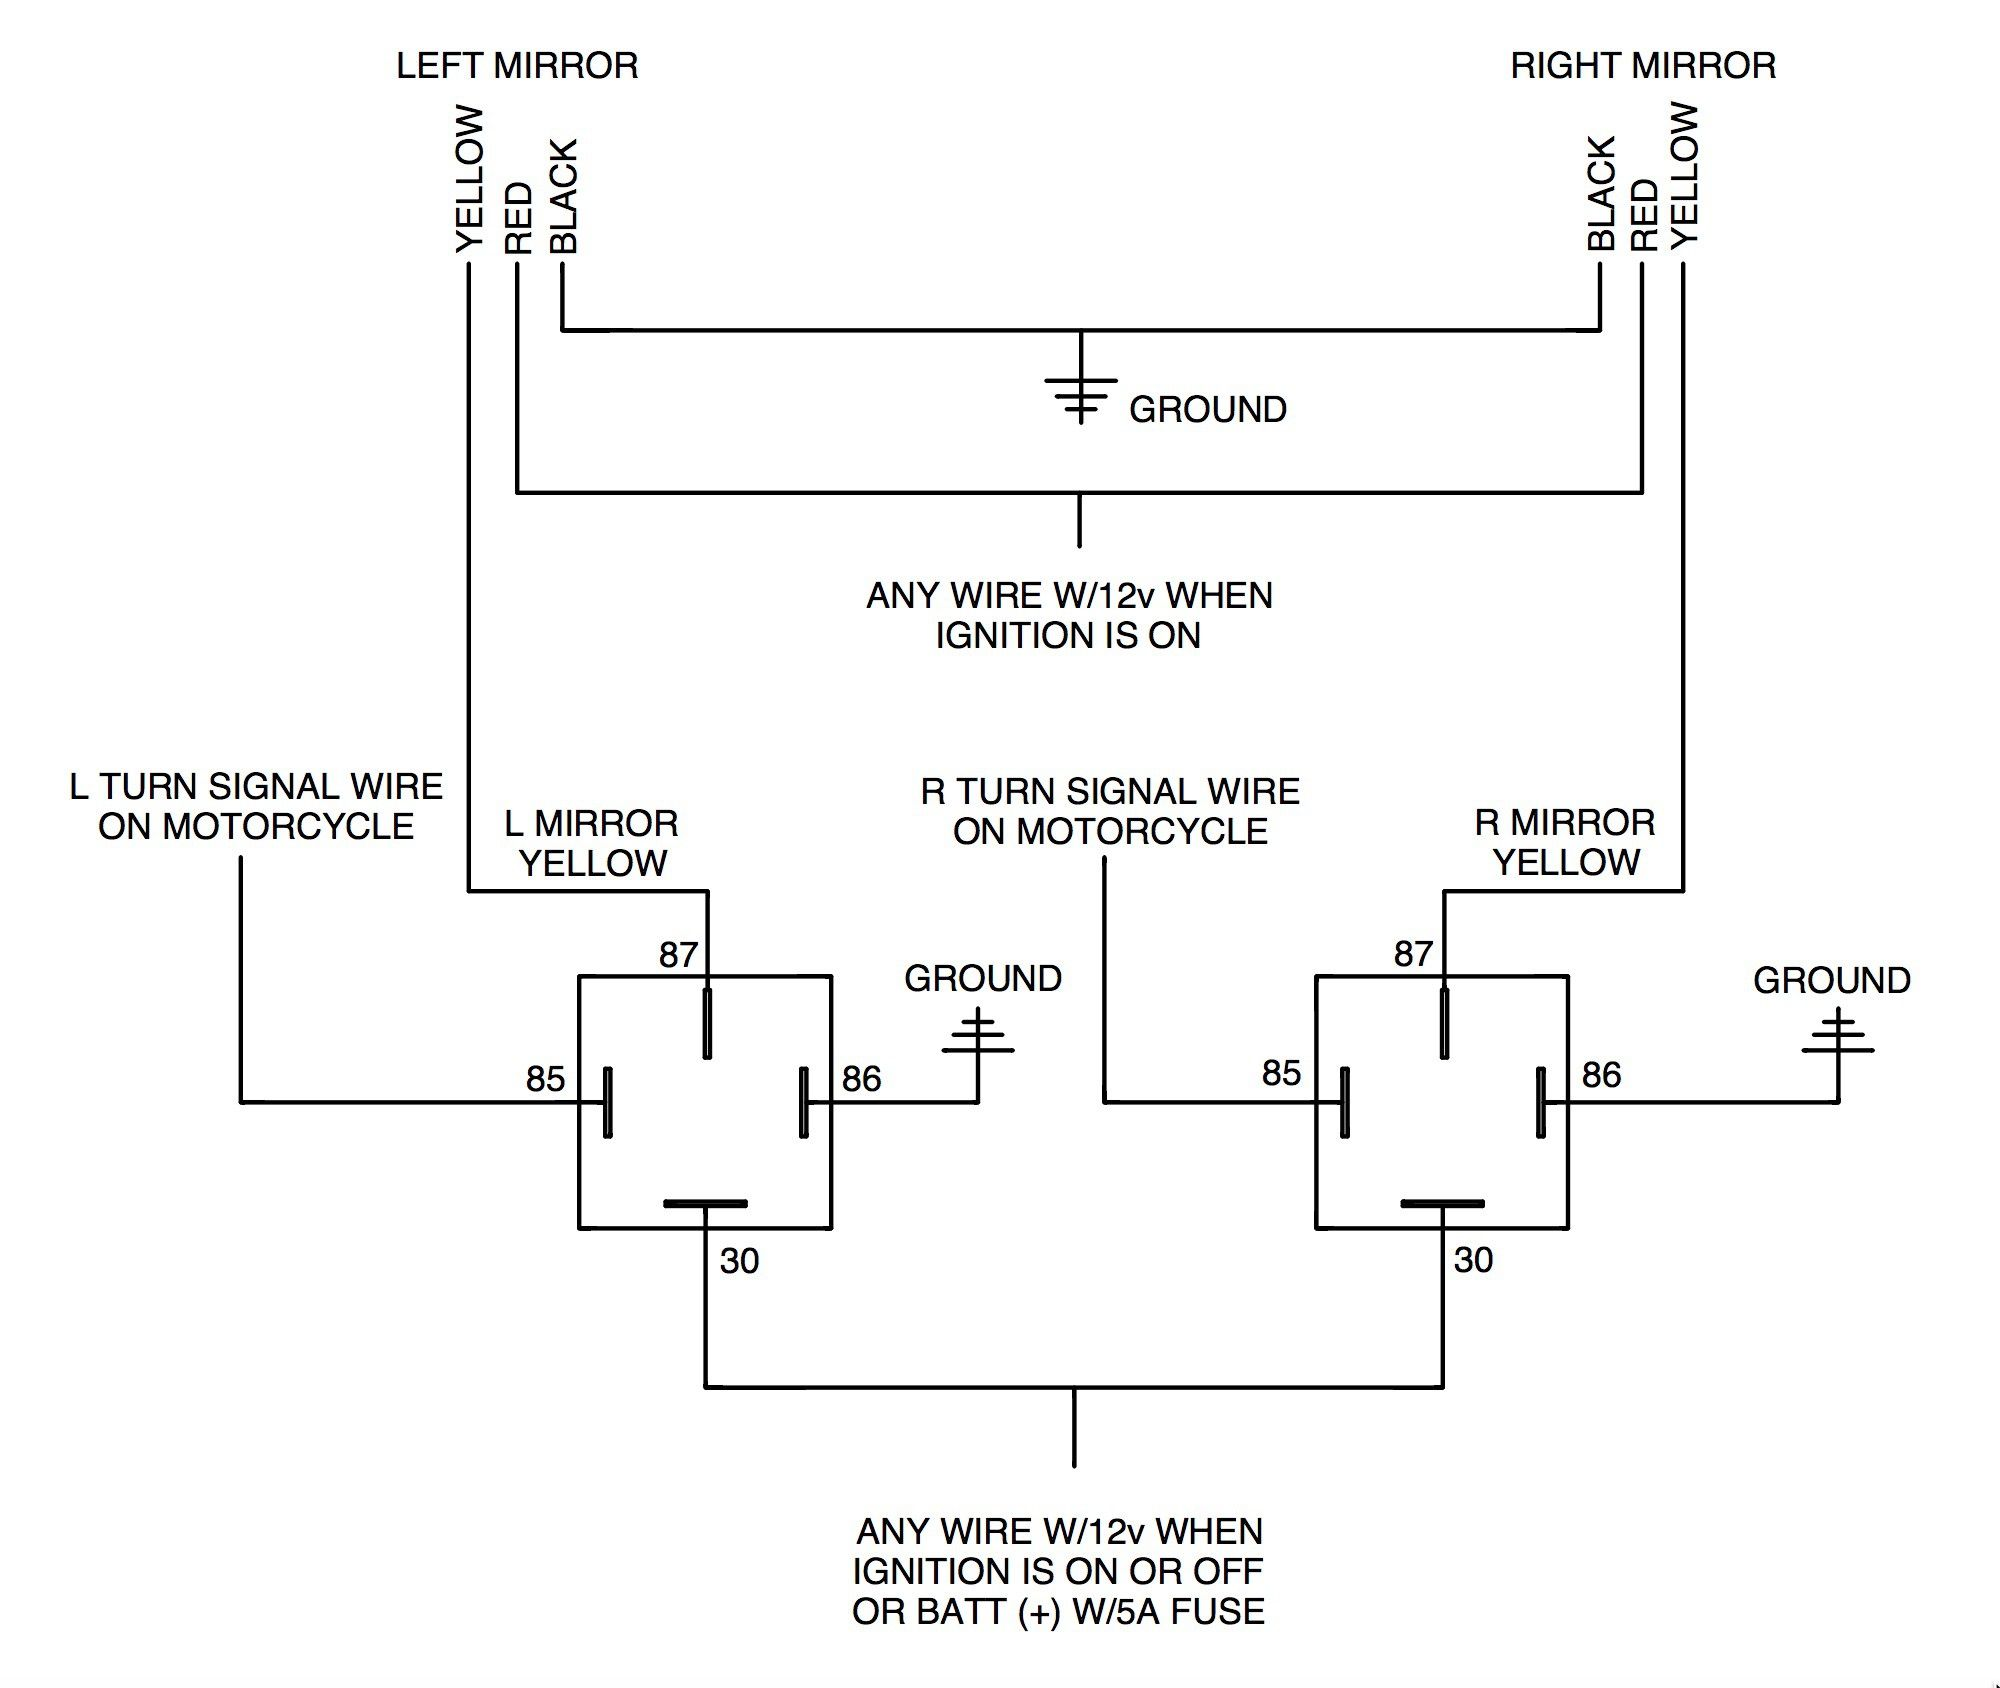 12v Relay Wiring Diagram 5 Pin Awesome Cute Standard Relay Wiring